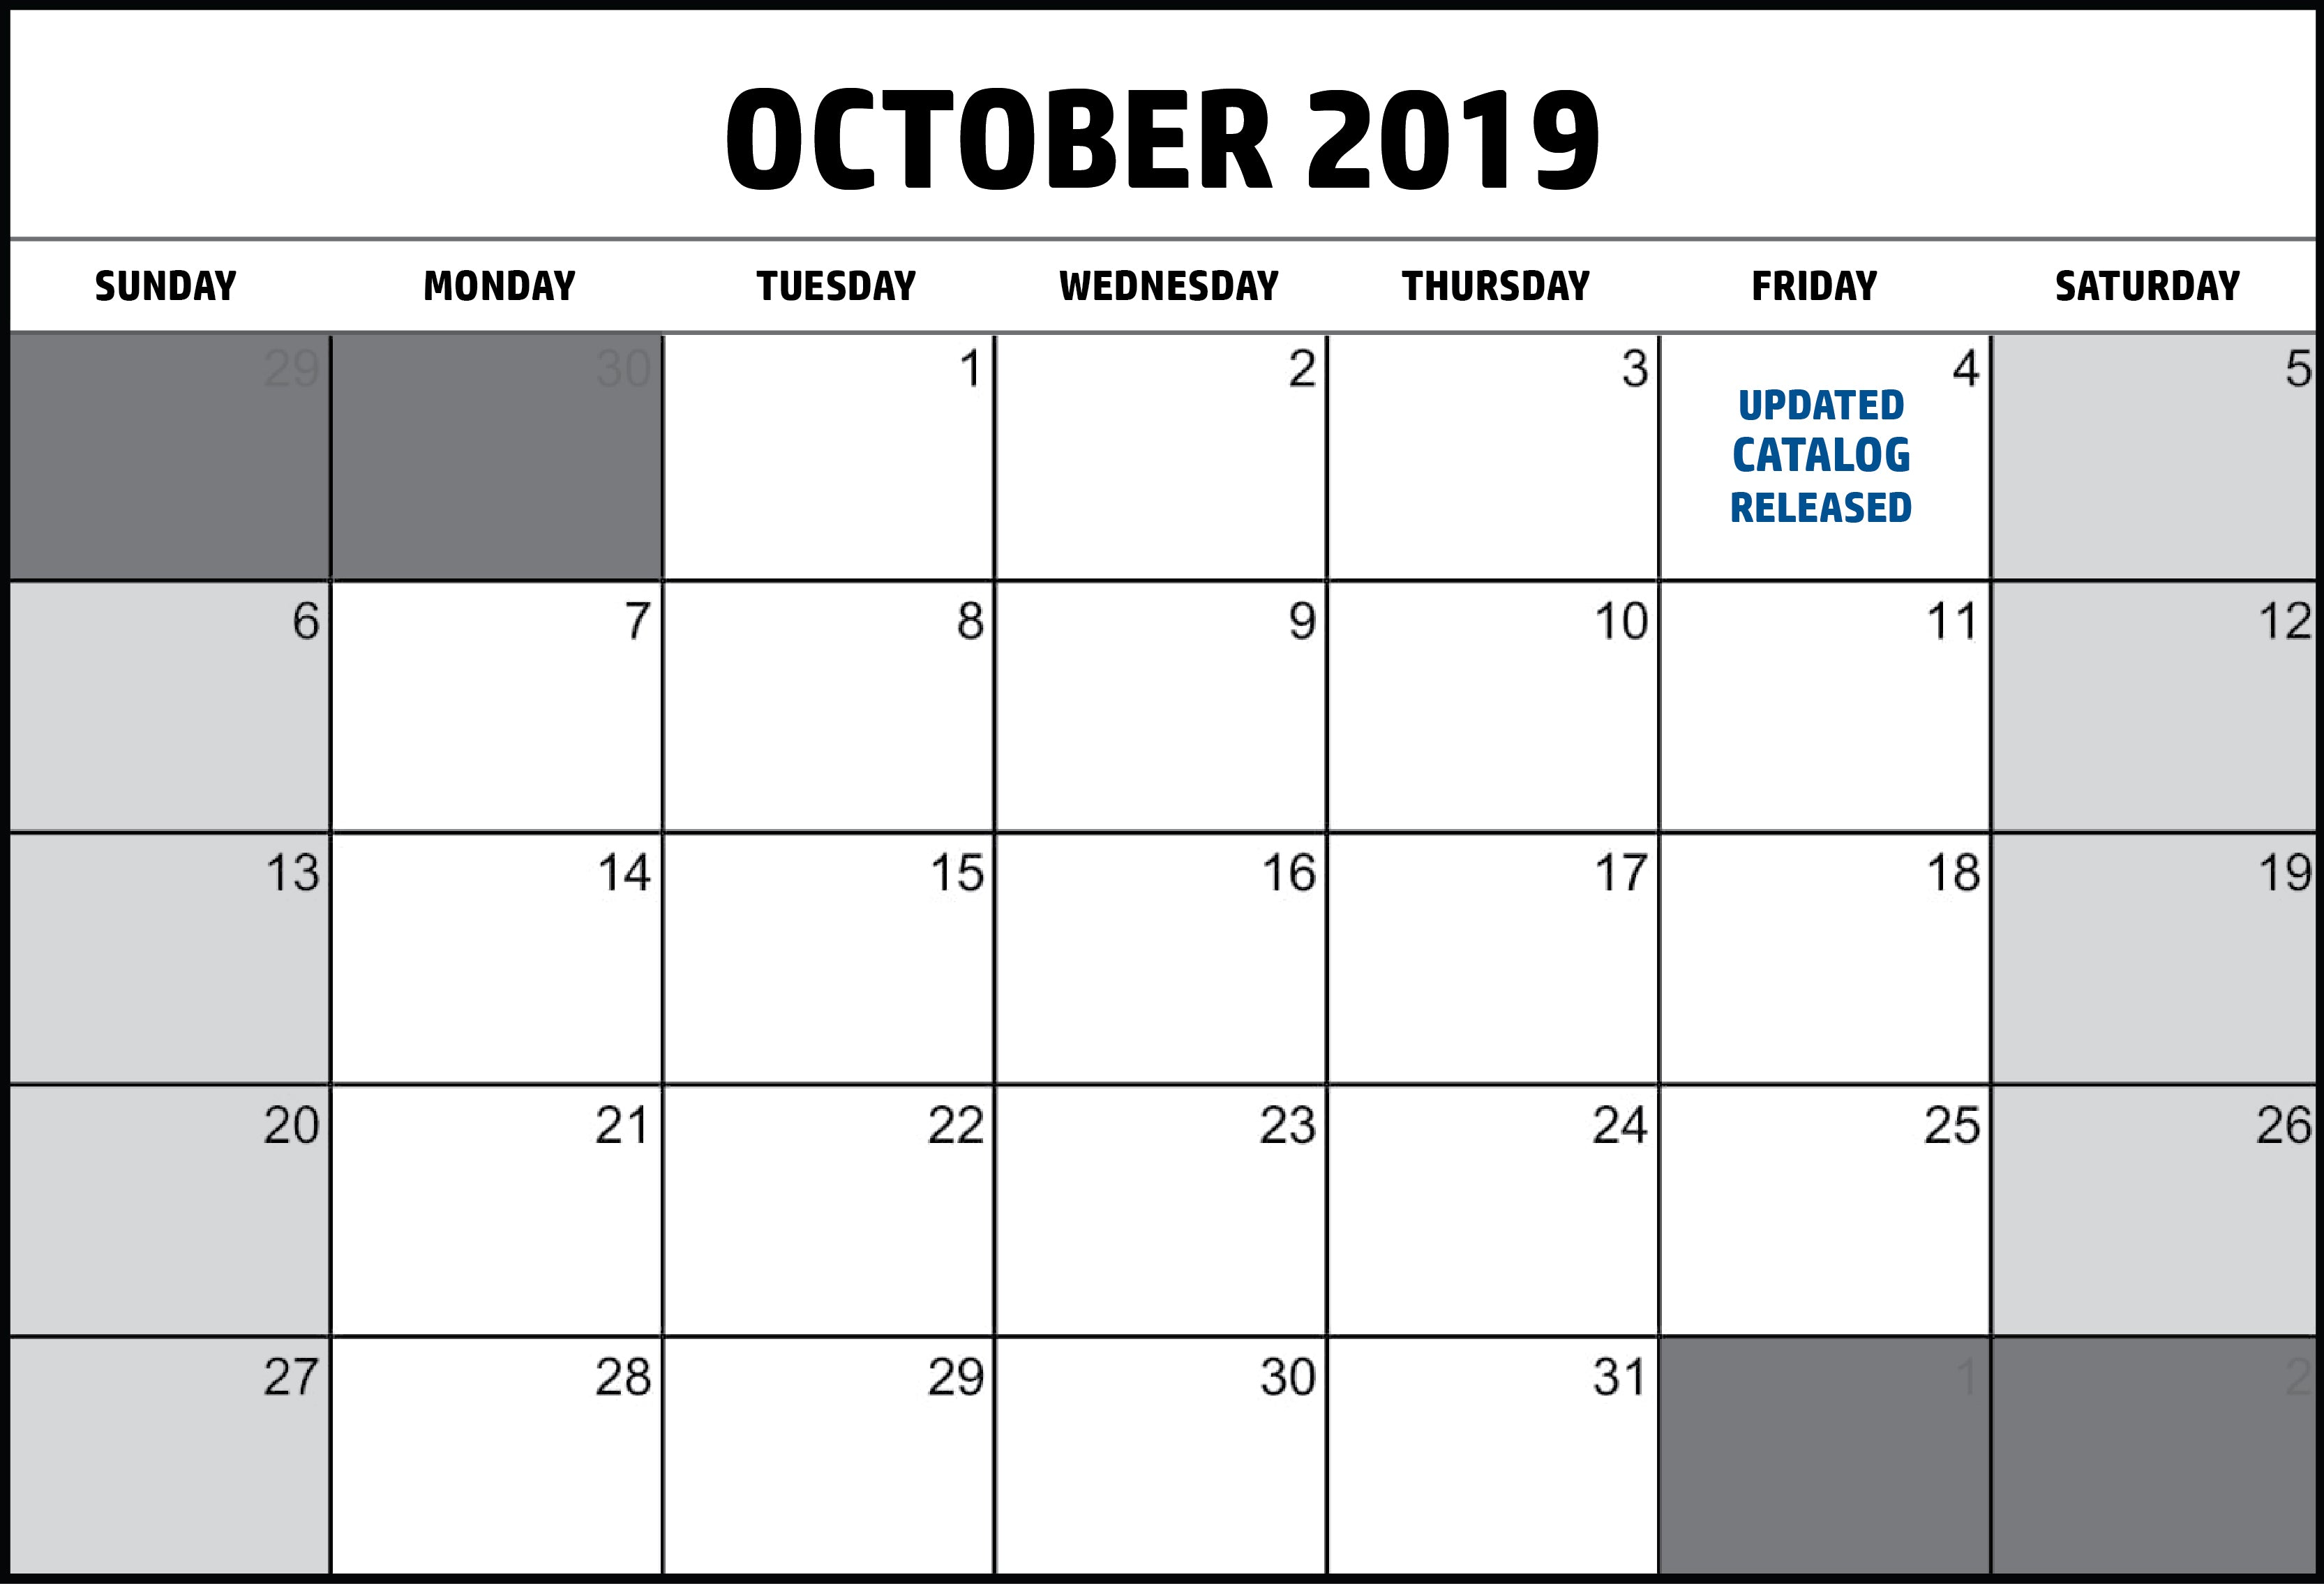 Bellingham sign shop hours of operation and schedule October 2019